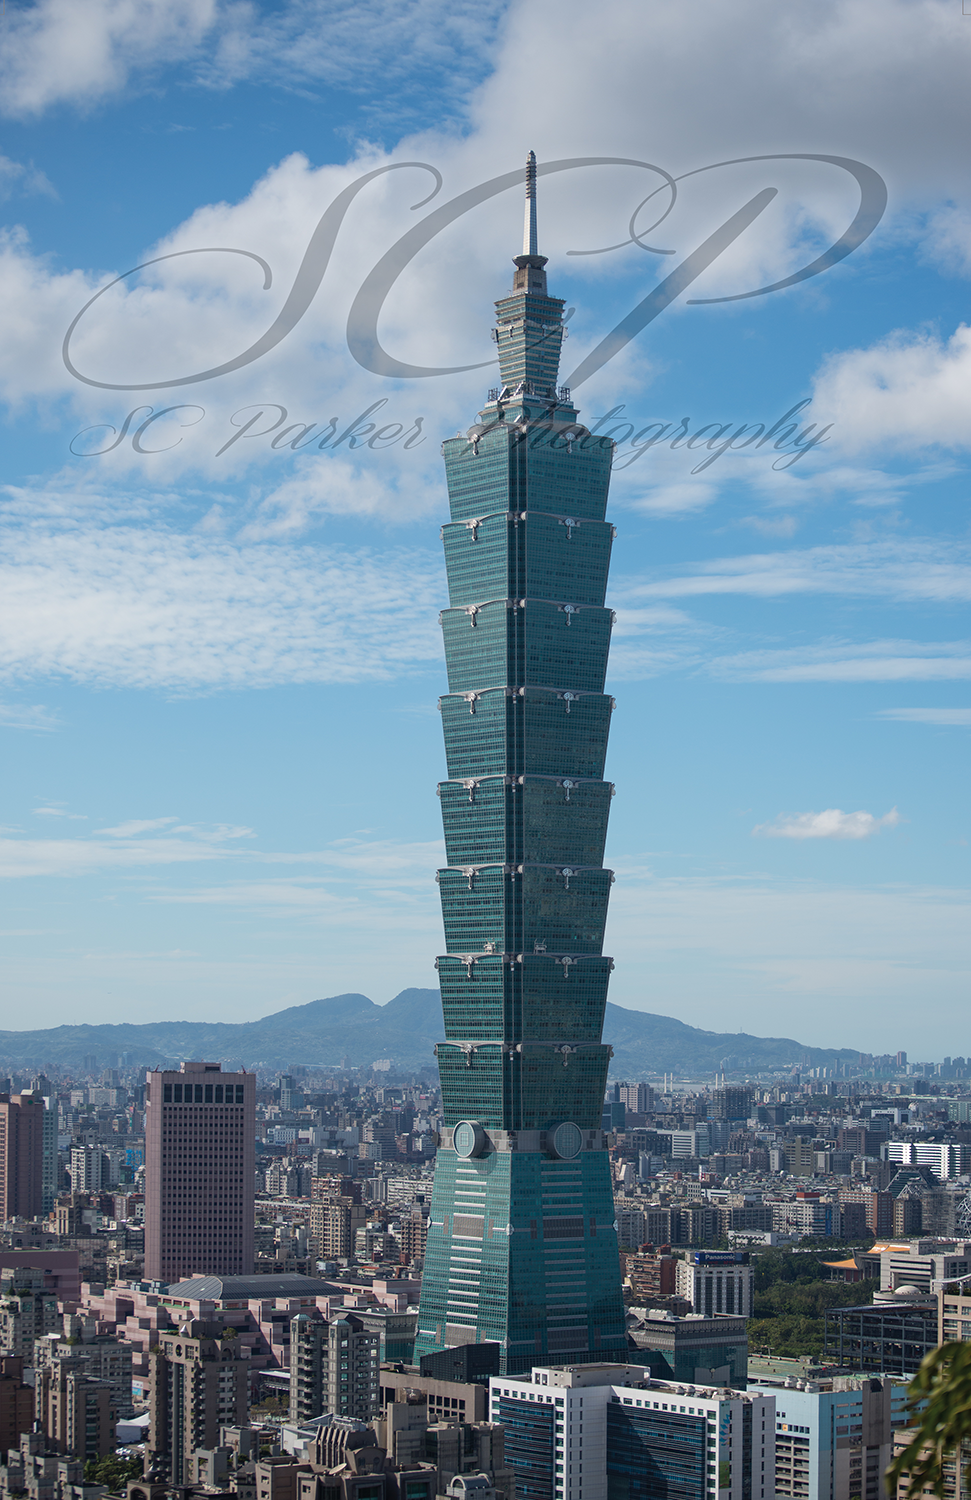 Website_Taipei 101 11x17 Samantha Parker. SCParkerpPhotography.png